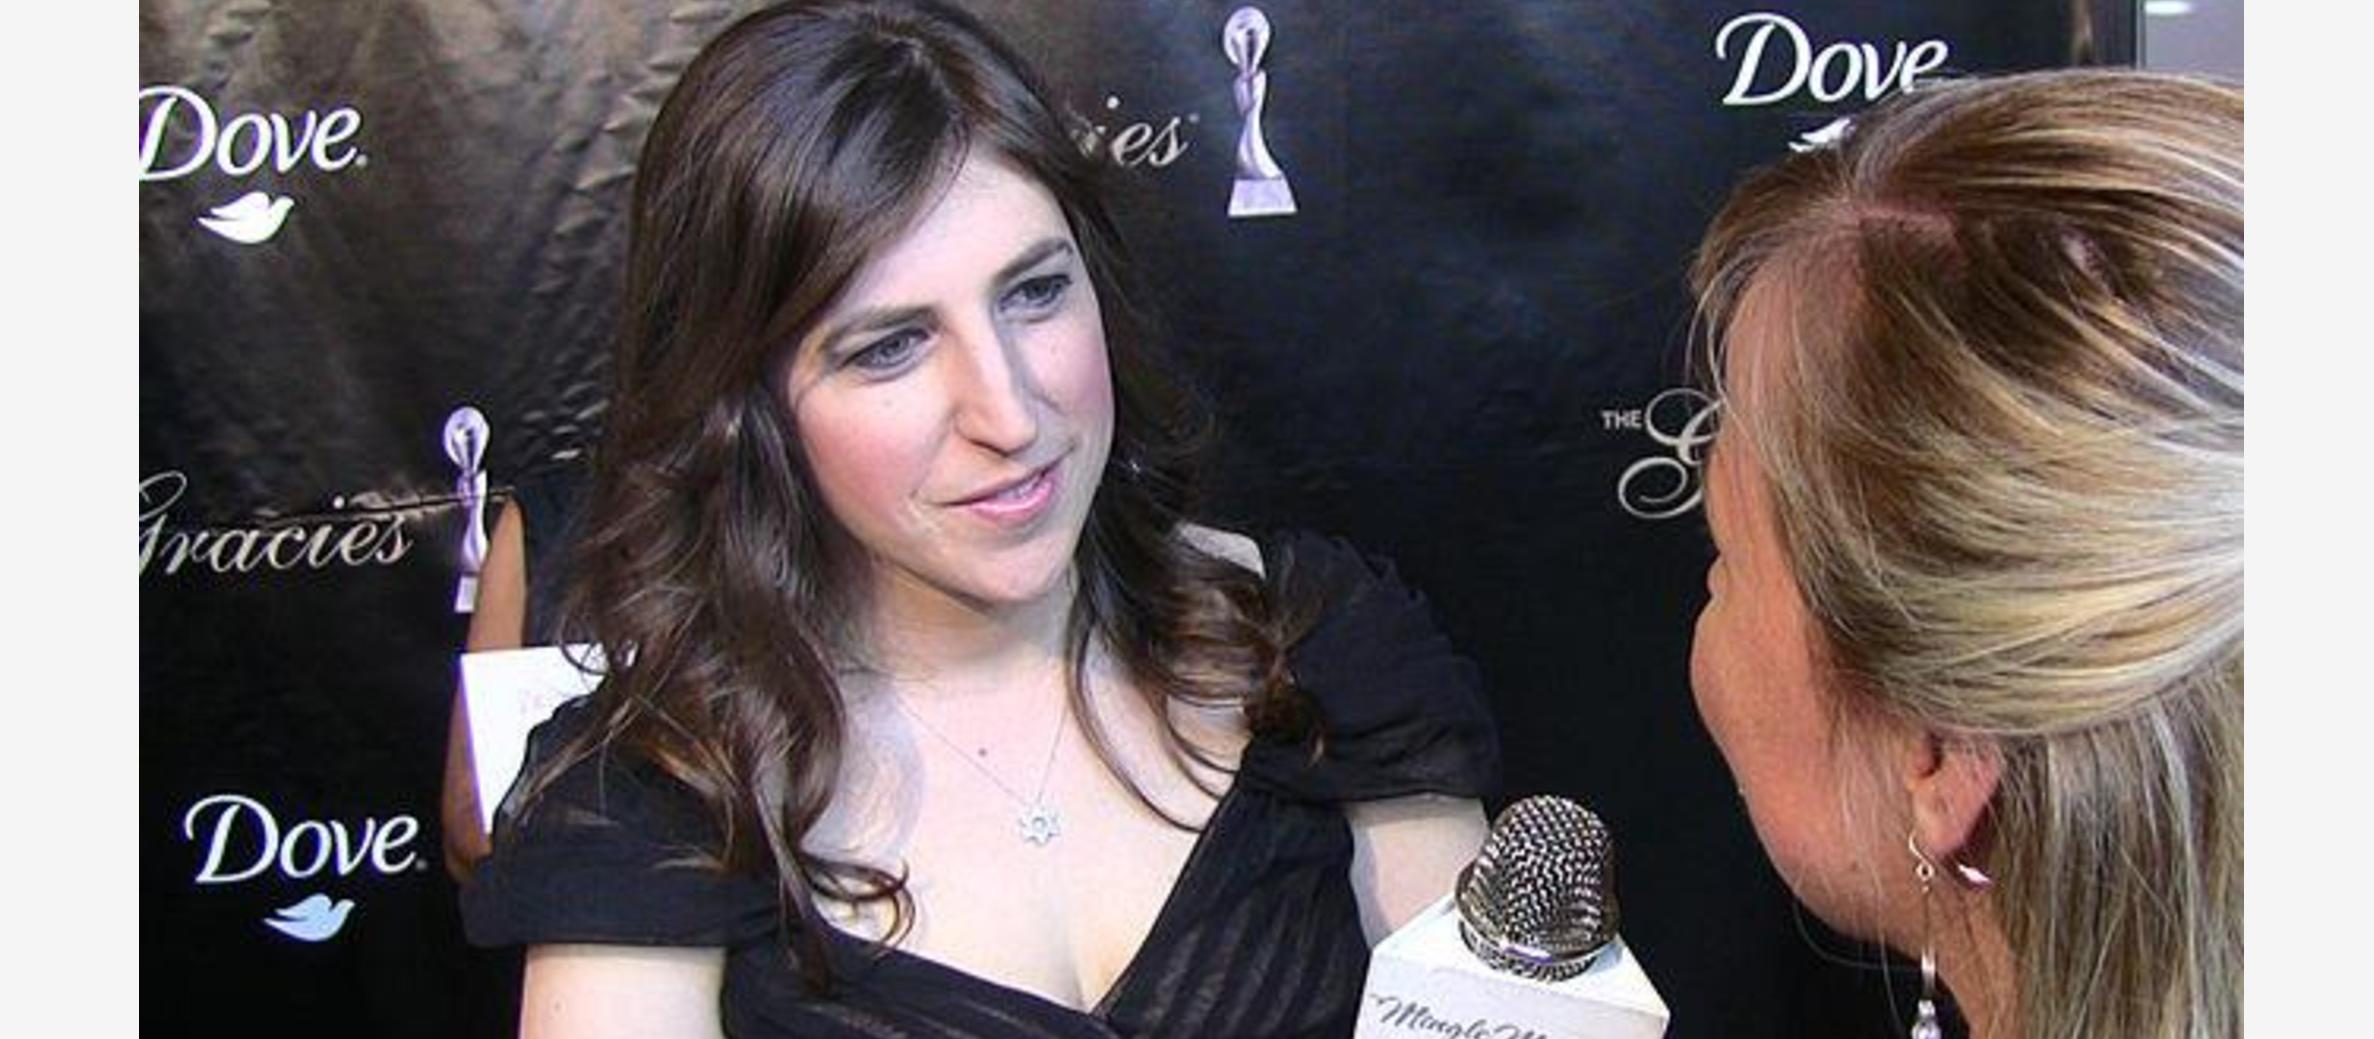 Actress Mayim Bialik: Don't be afraid to voice support for Israel